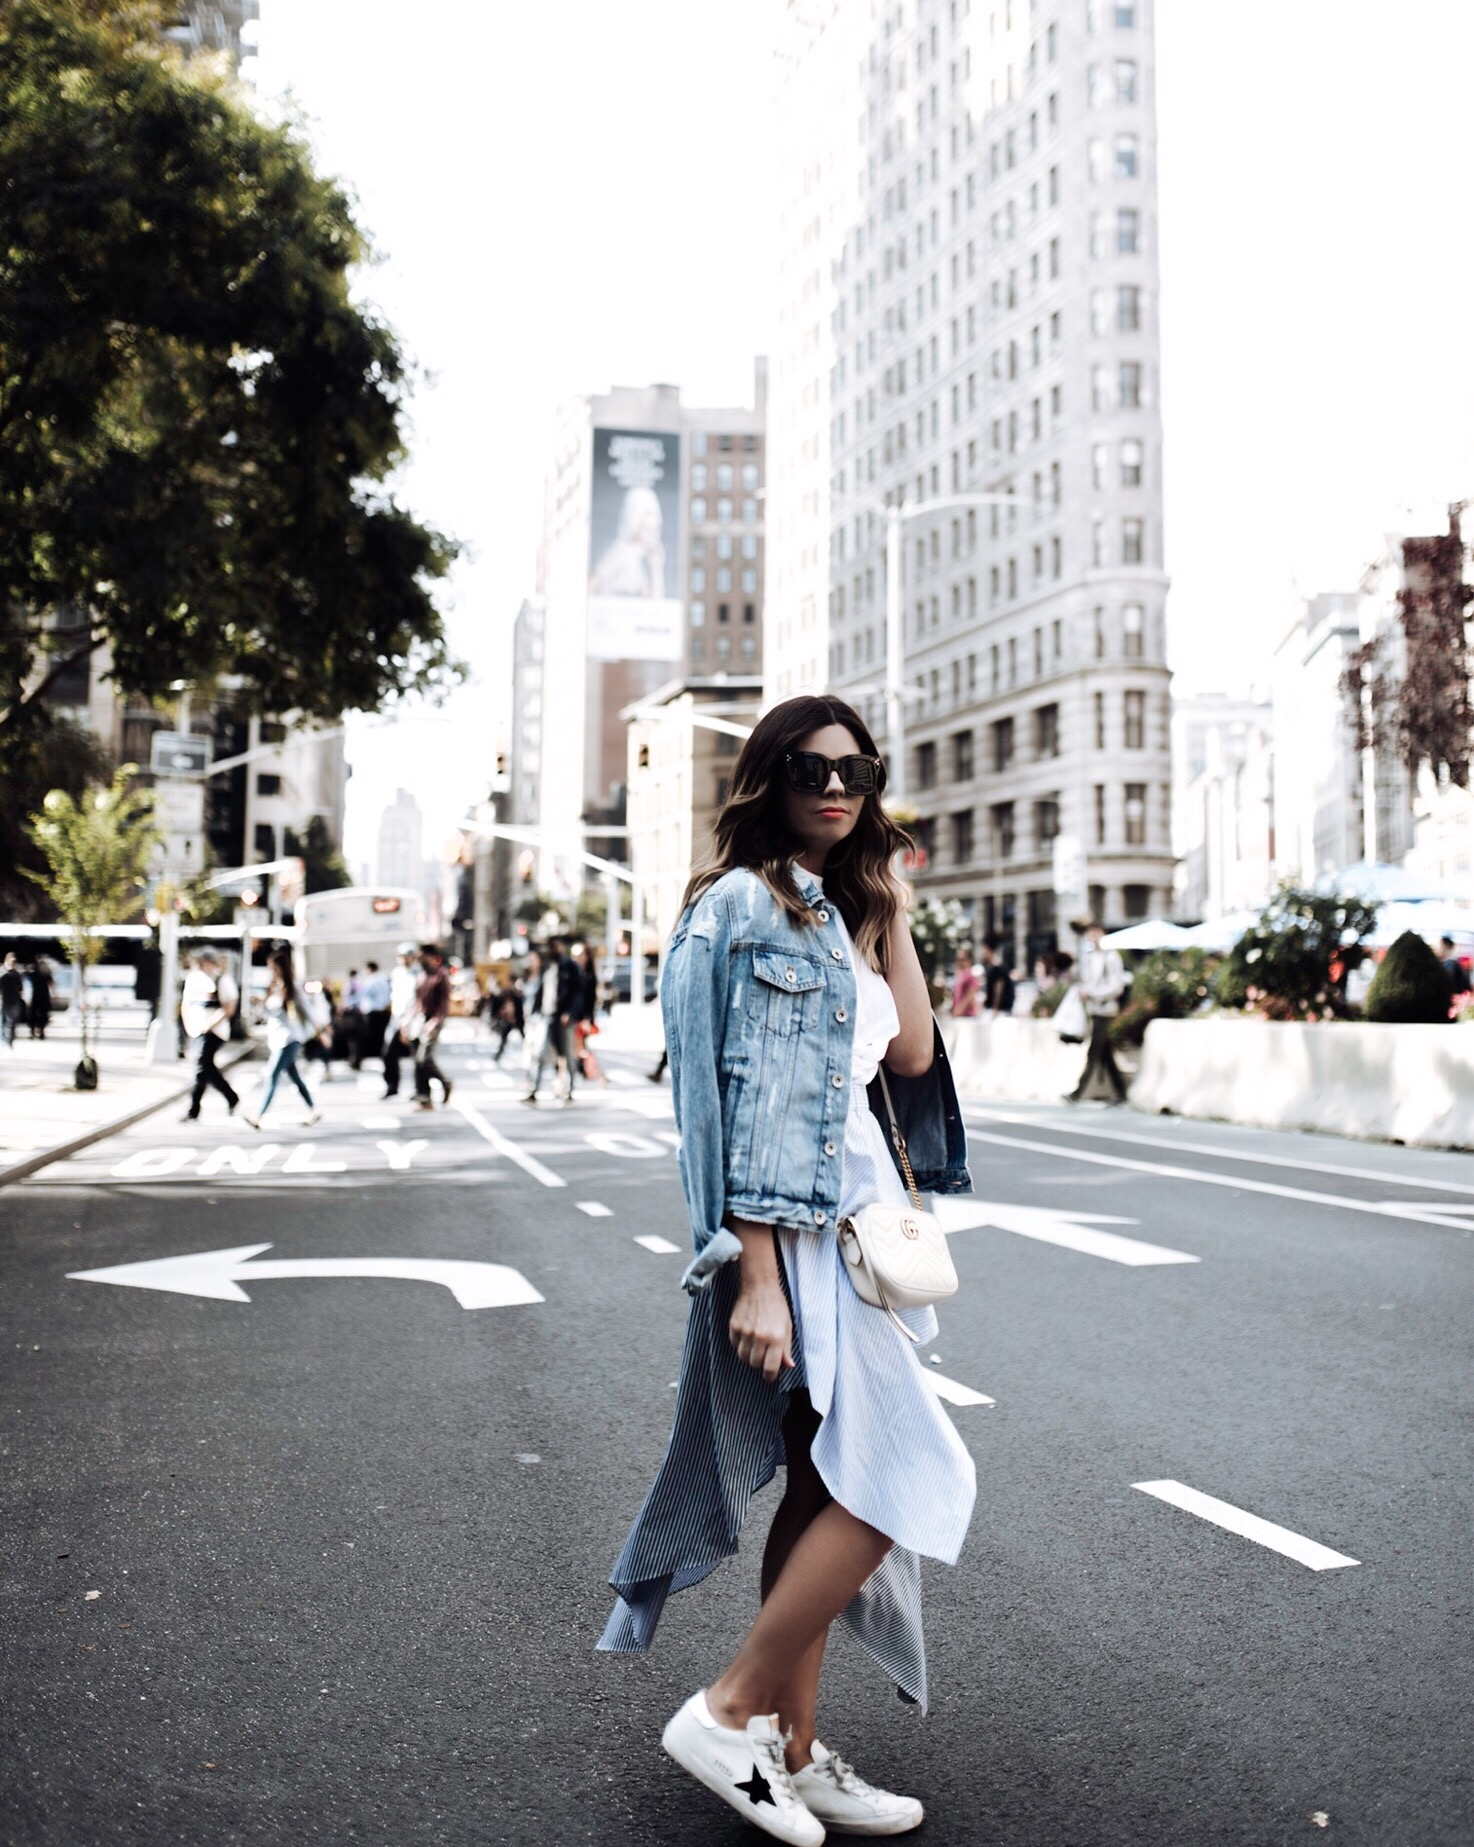 Tiffany Jais fashion and lifestyle blogger of Flaunt and Center | NYFW | Flat iron building NYC | Opening Ceremony skirt, Gucci marmot bag in white